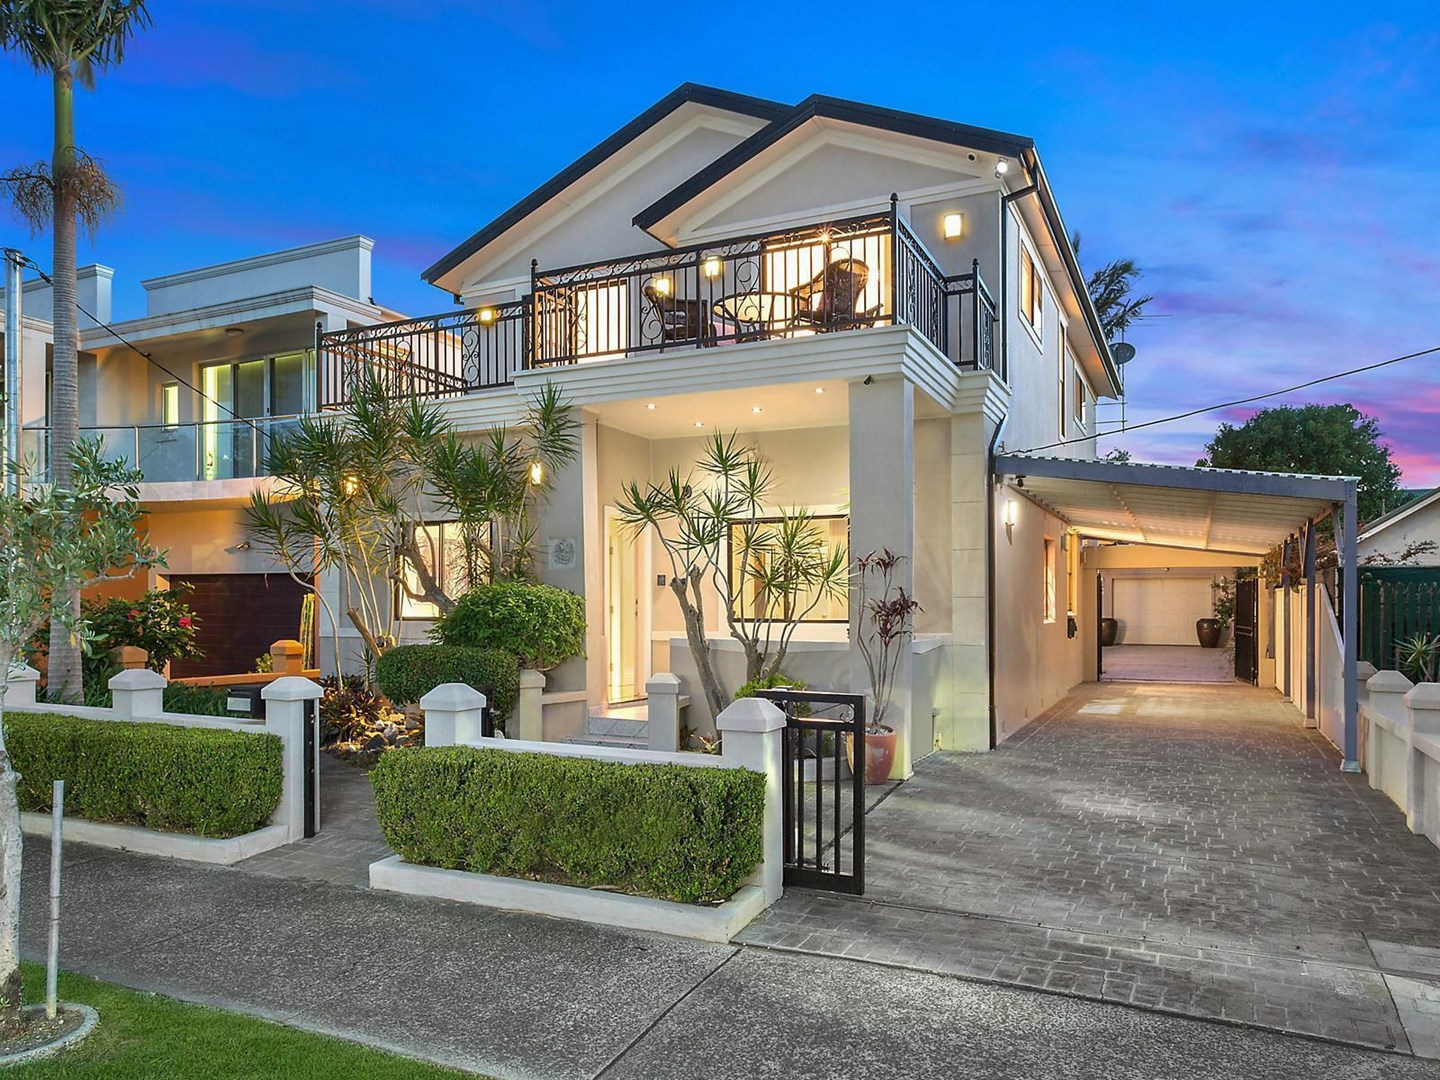 For Sale, price $1,750,000